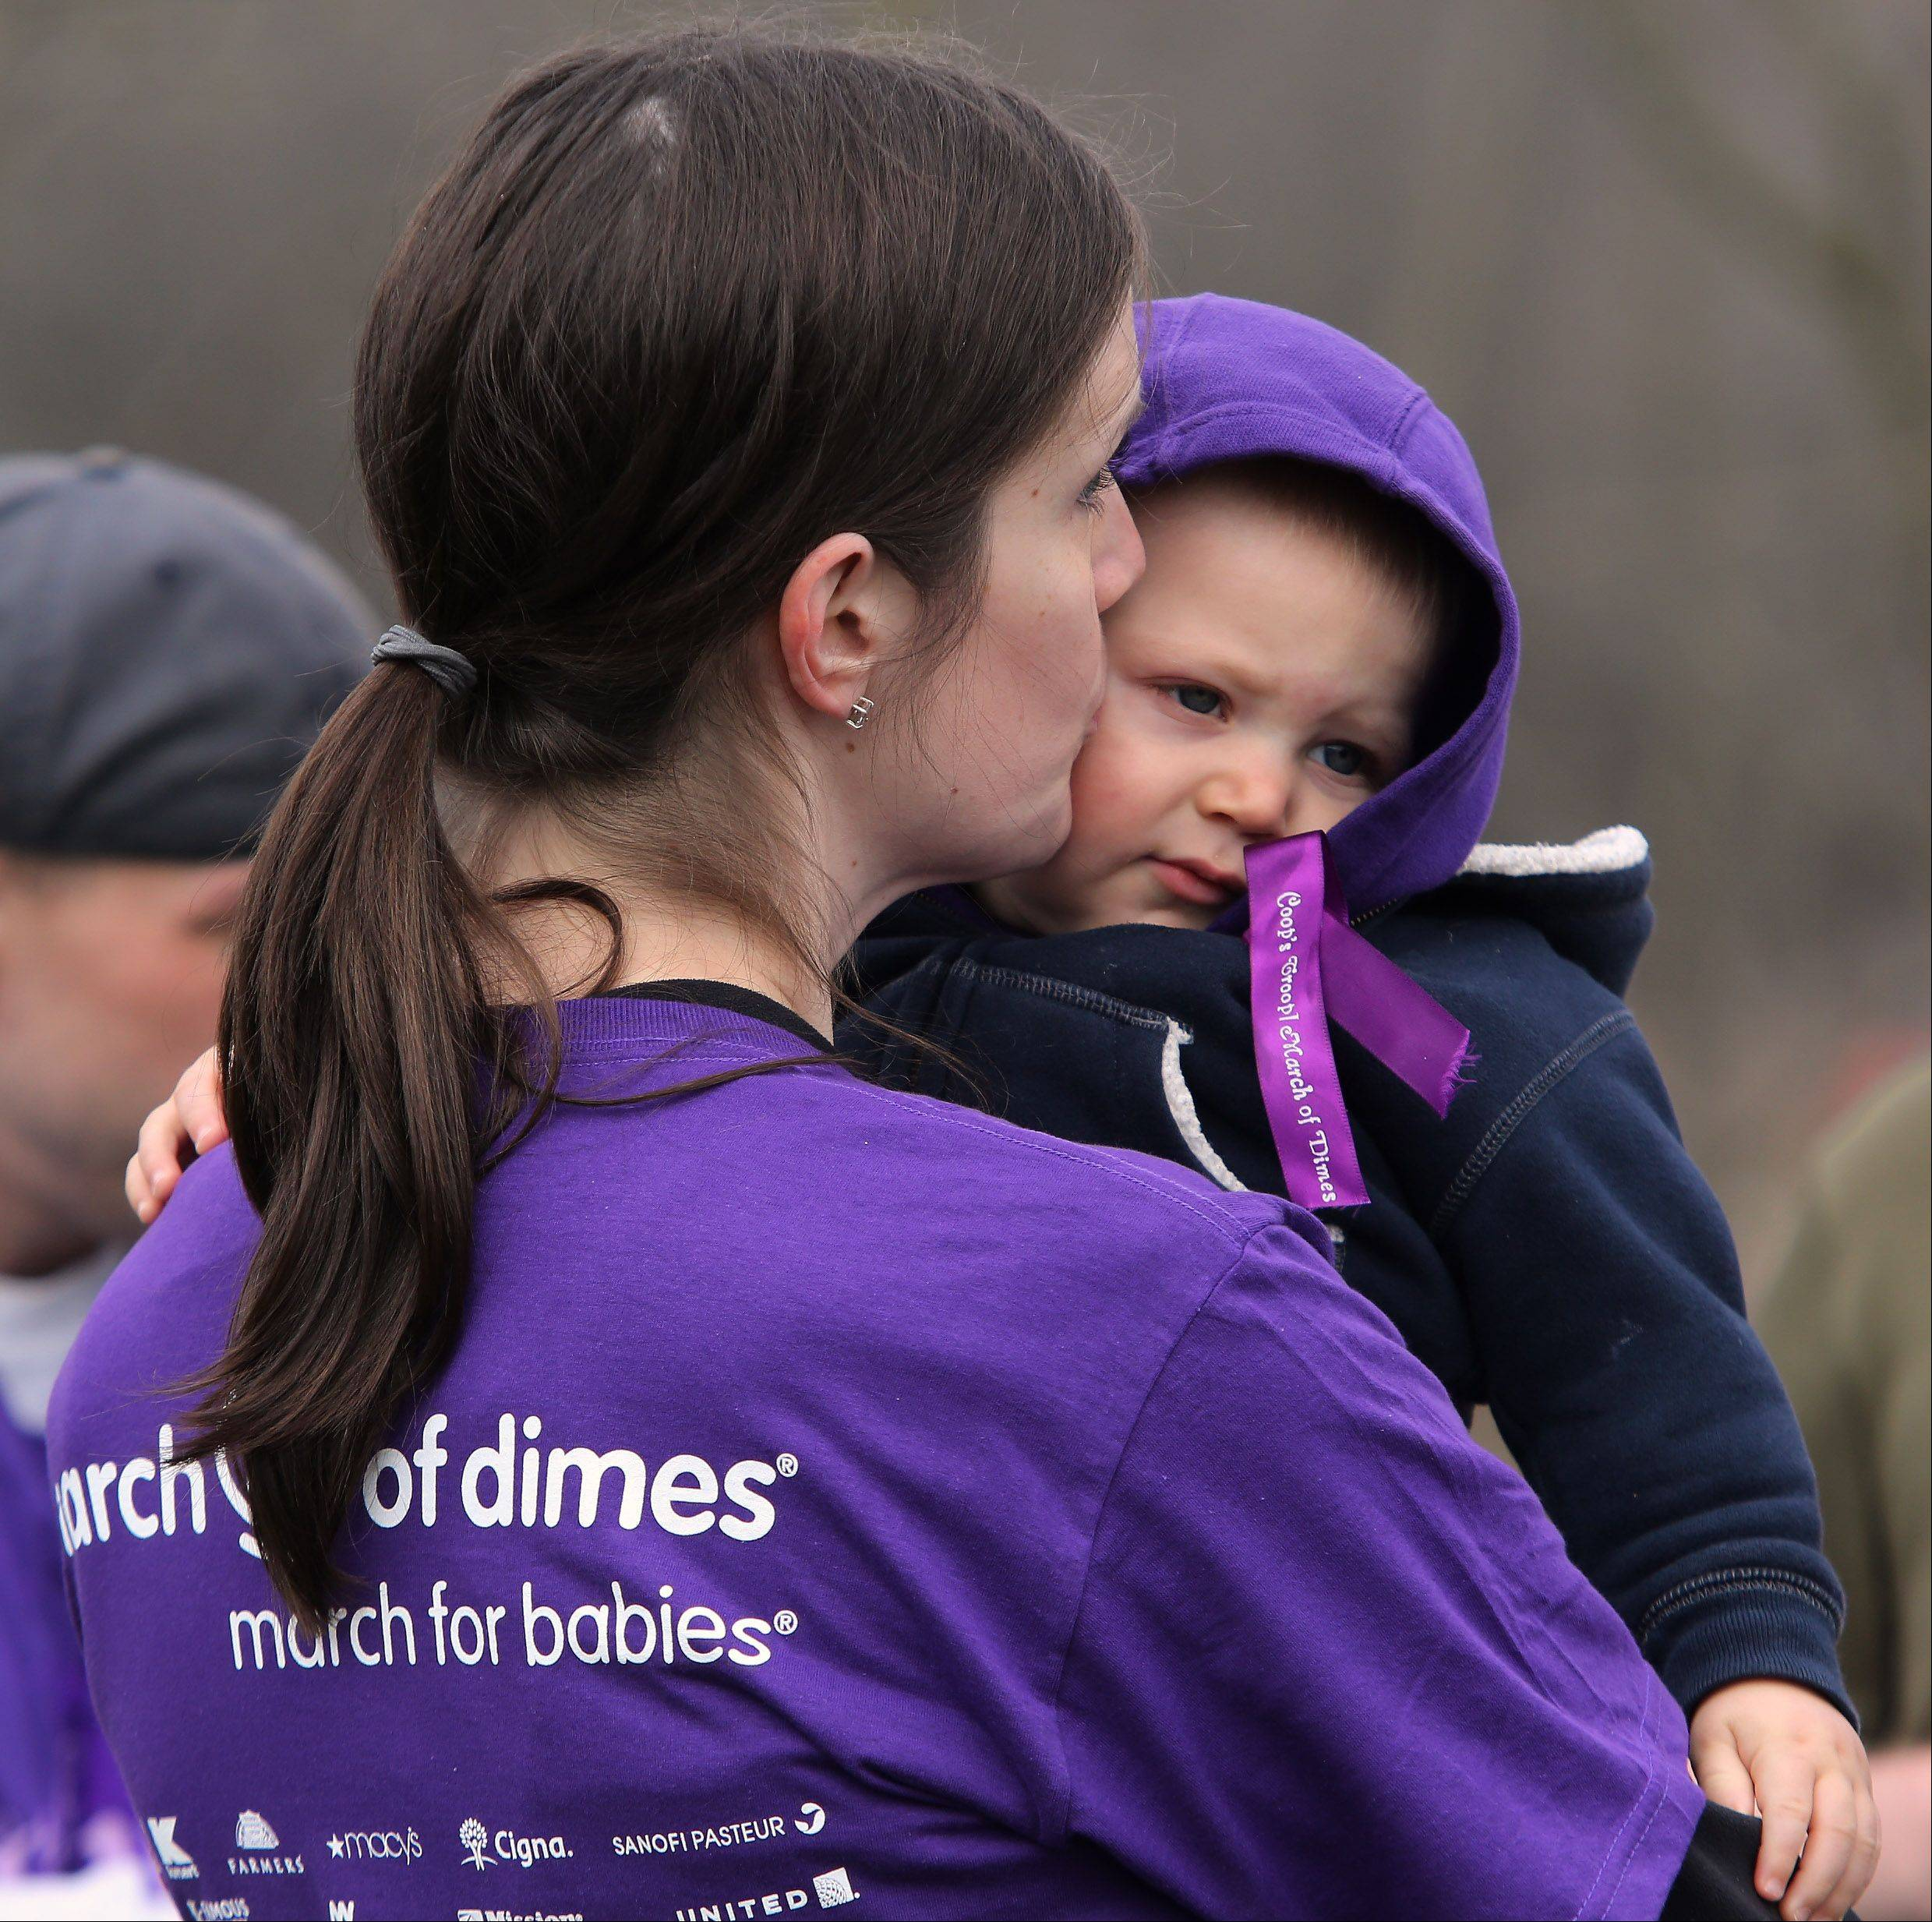 Jess Pruess, of Libertyville, kisses her 11-month-old son, Cooper before participating in the March of Dimes walk Sunday at Old School Forest Preserve near Libertyville. The March for Babies walk raises awareness and money for programs in Lake County to help understand and prevent premature birth and other serious problems that threaten babies.